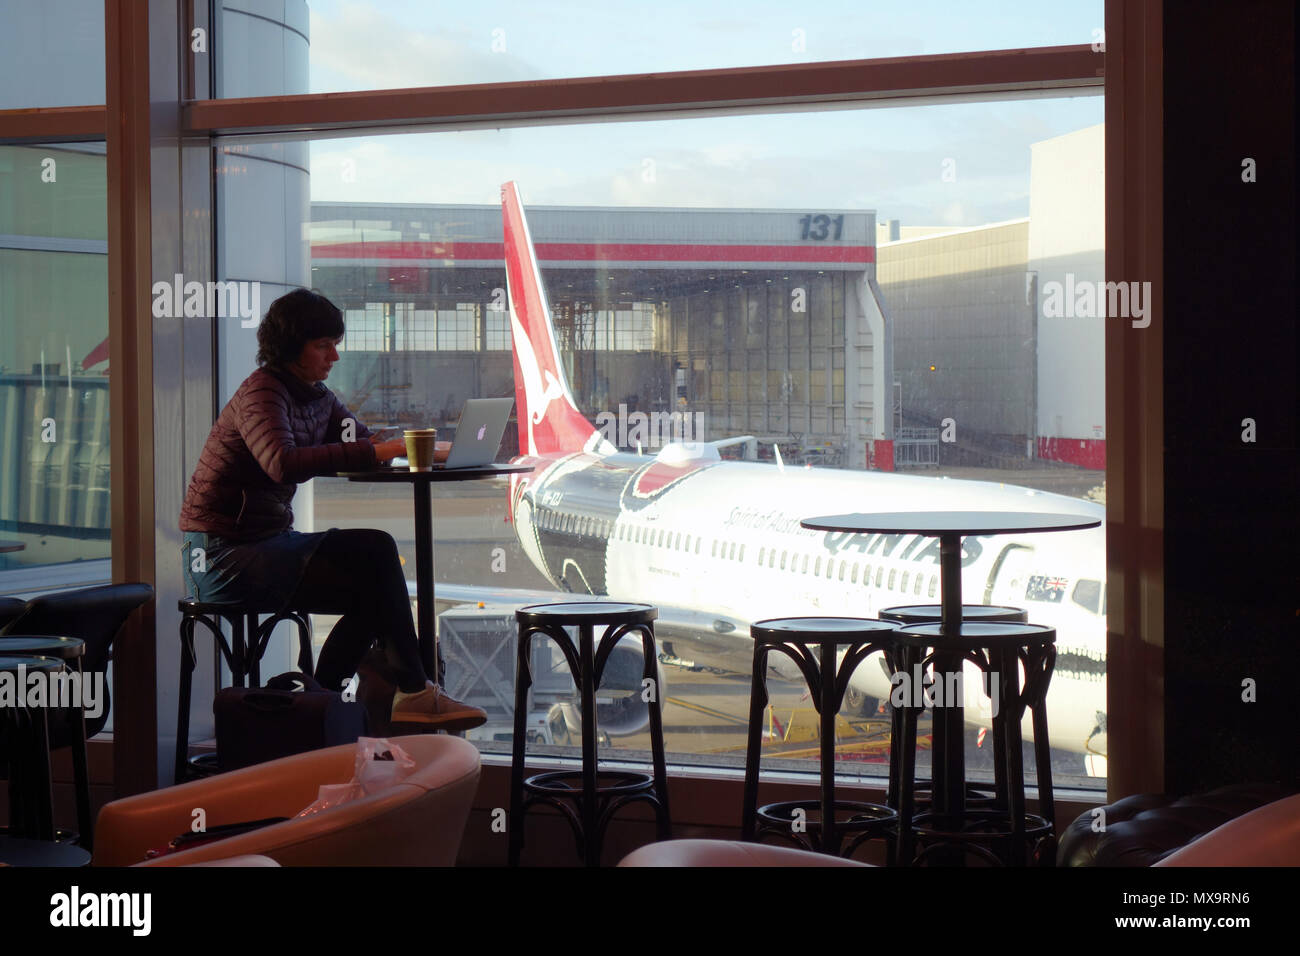 Woman using computer and drinking coffee while waiting for Qantas flight at airport, Sydney, NSW, Australia. No MR or PR - Stock Image